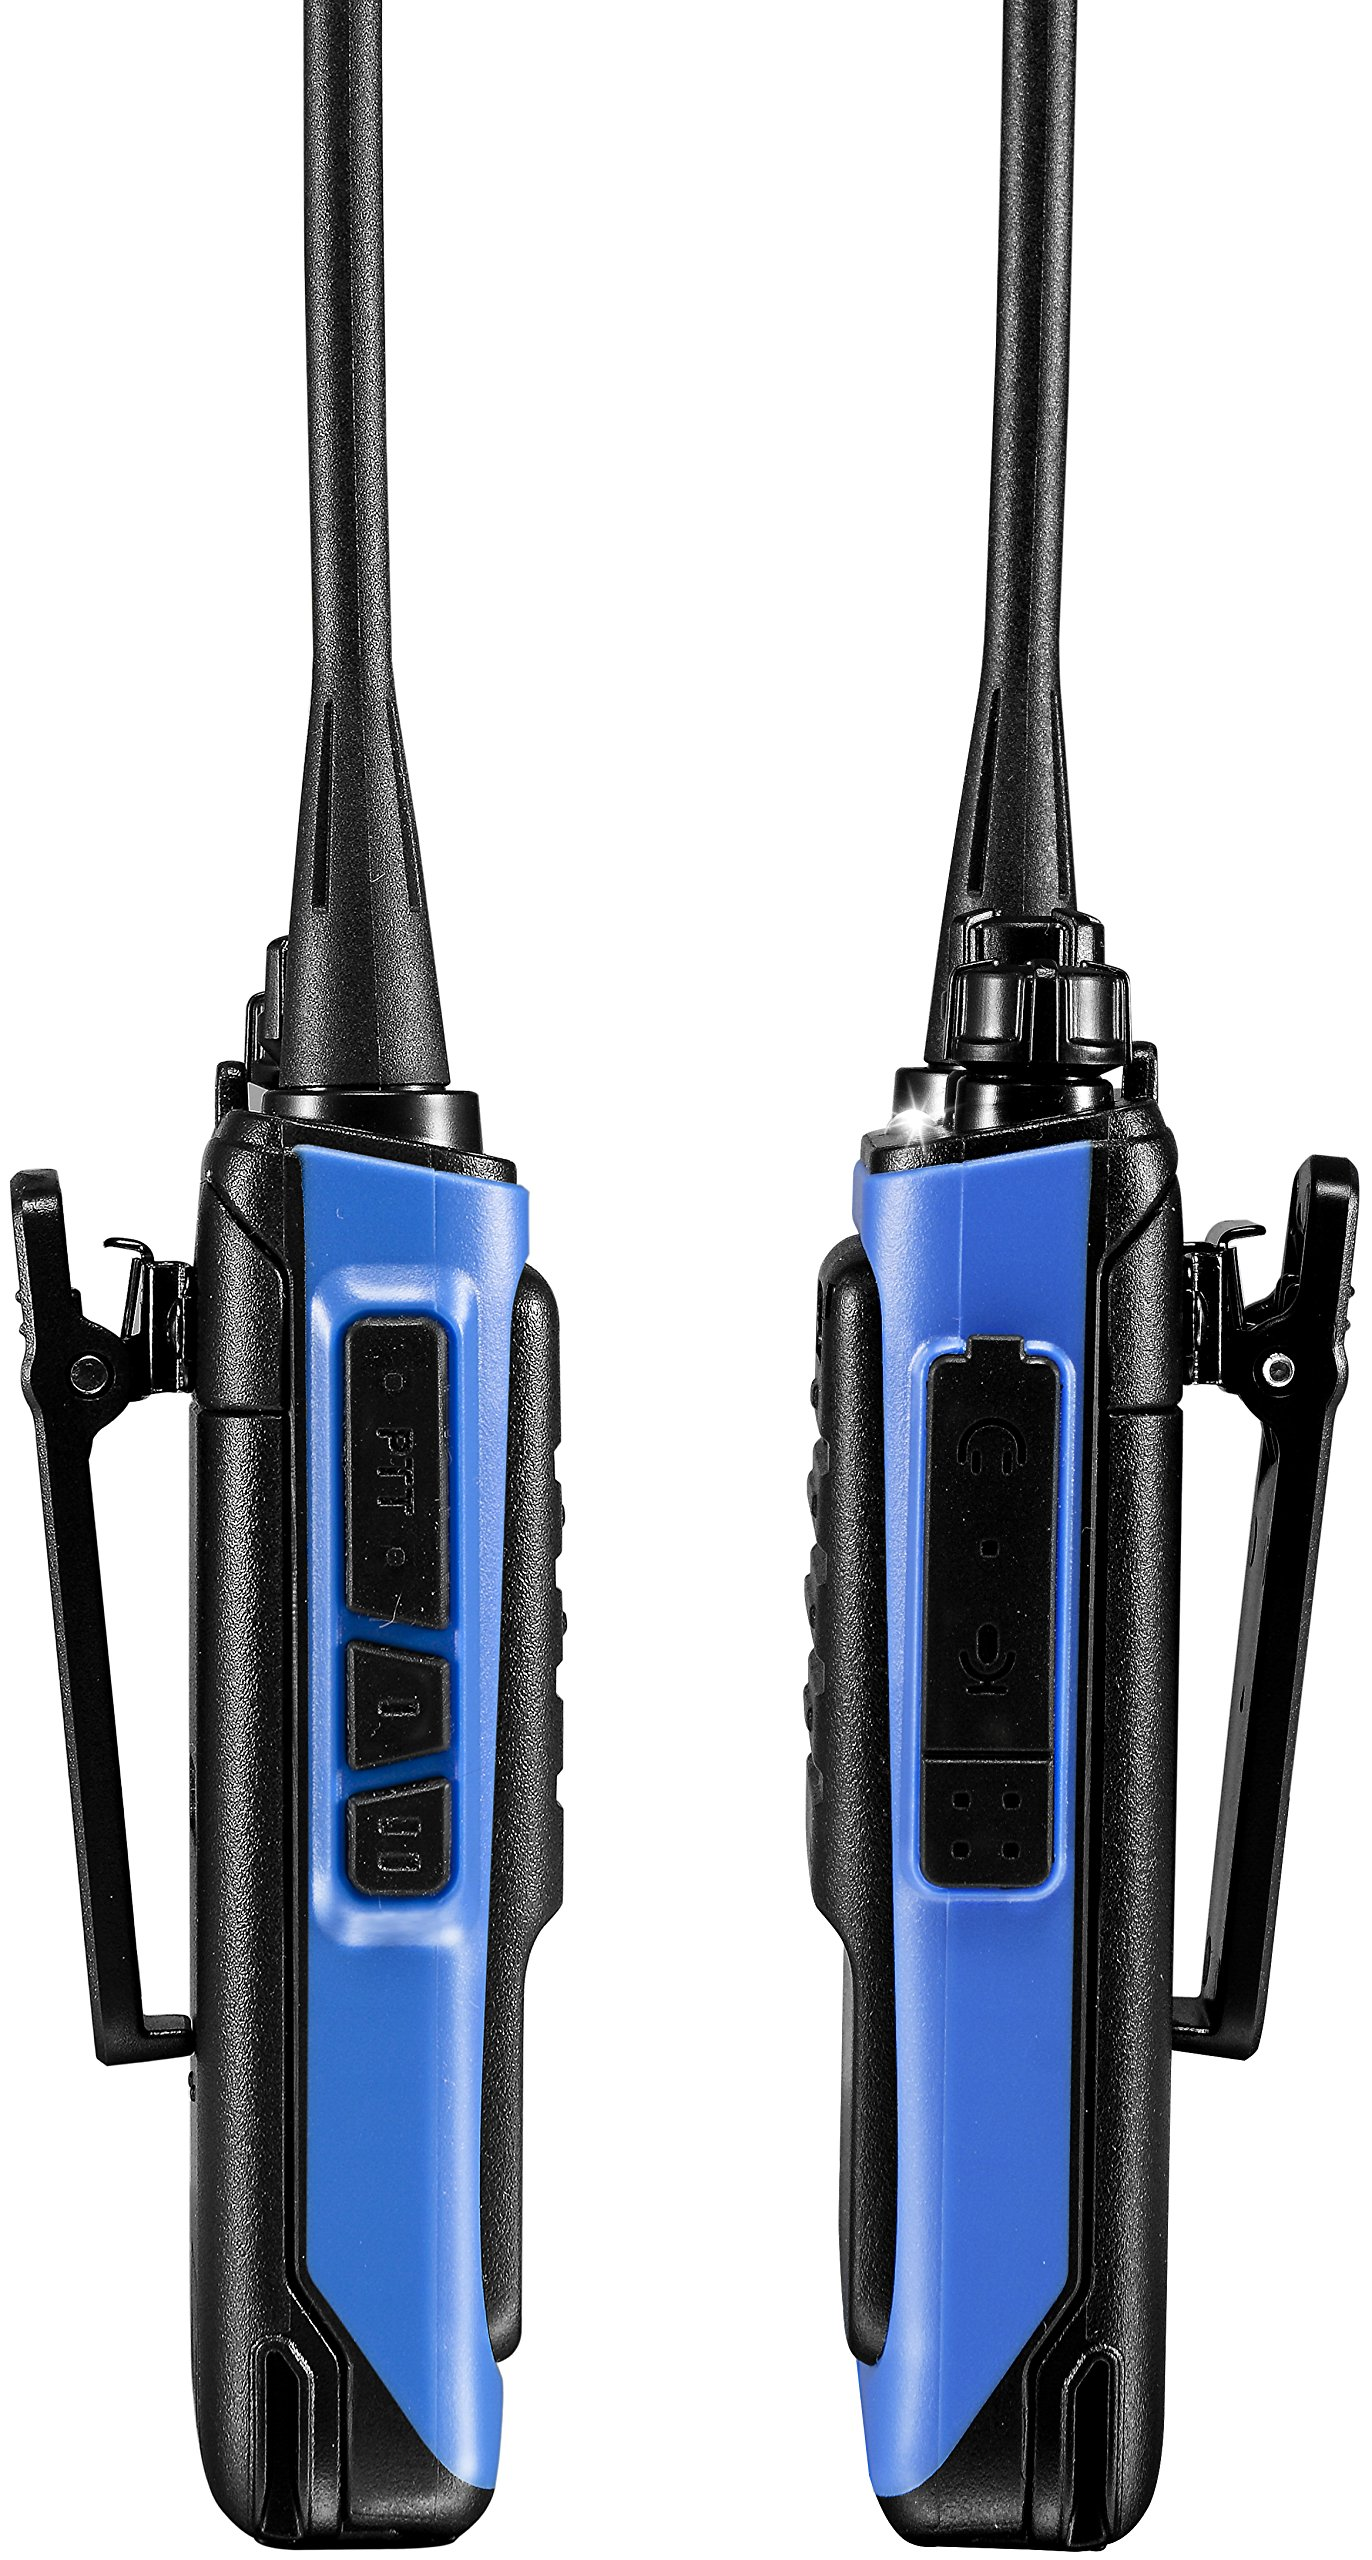 5740591ca3c Arcshell Rechargeable Long Range Two-Way Radios with Earpiece 2 Pack UHF 400 -470Mhz Walkie Talkies Li-ion Battery and Charger Included